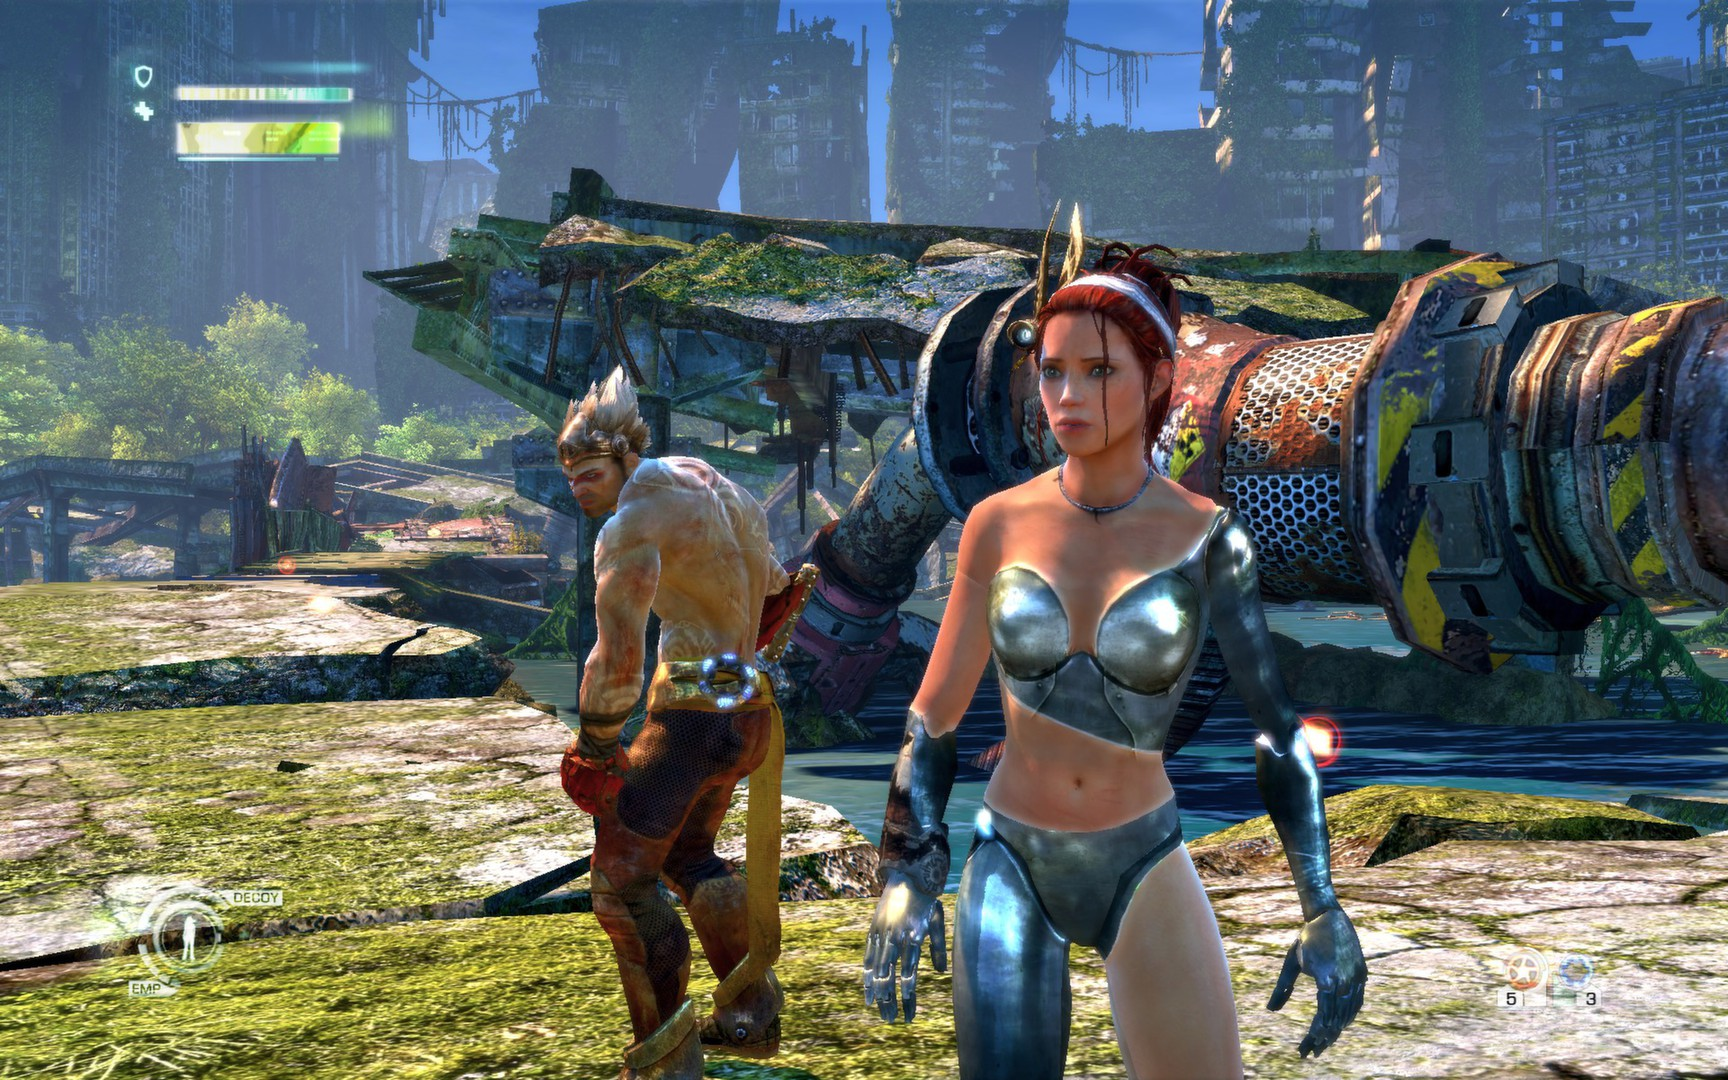 Enslaved odyssey to the west porn porn photo